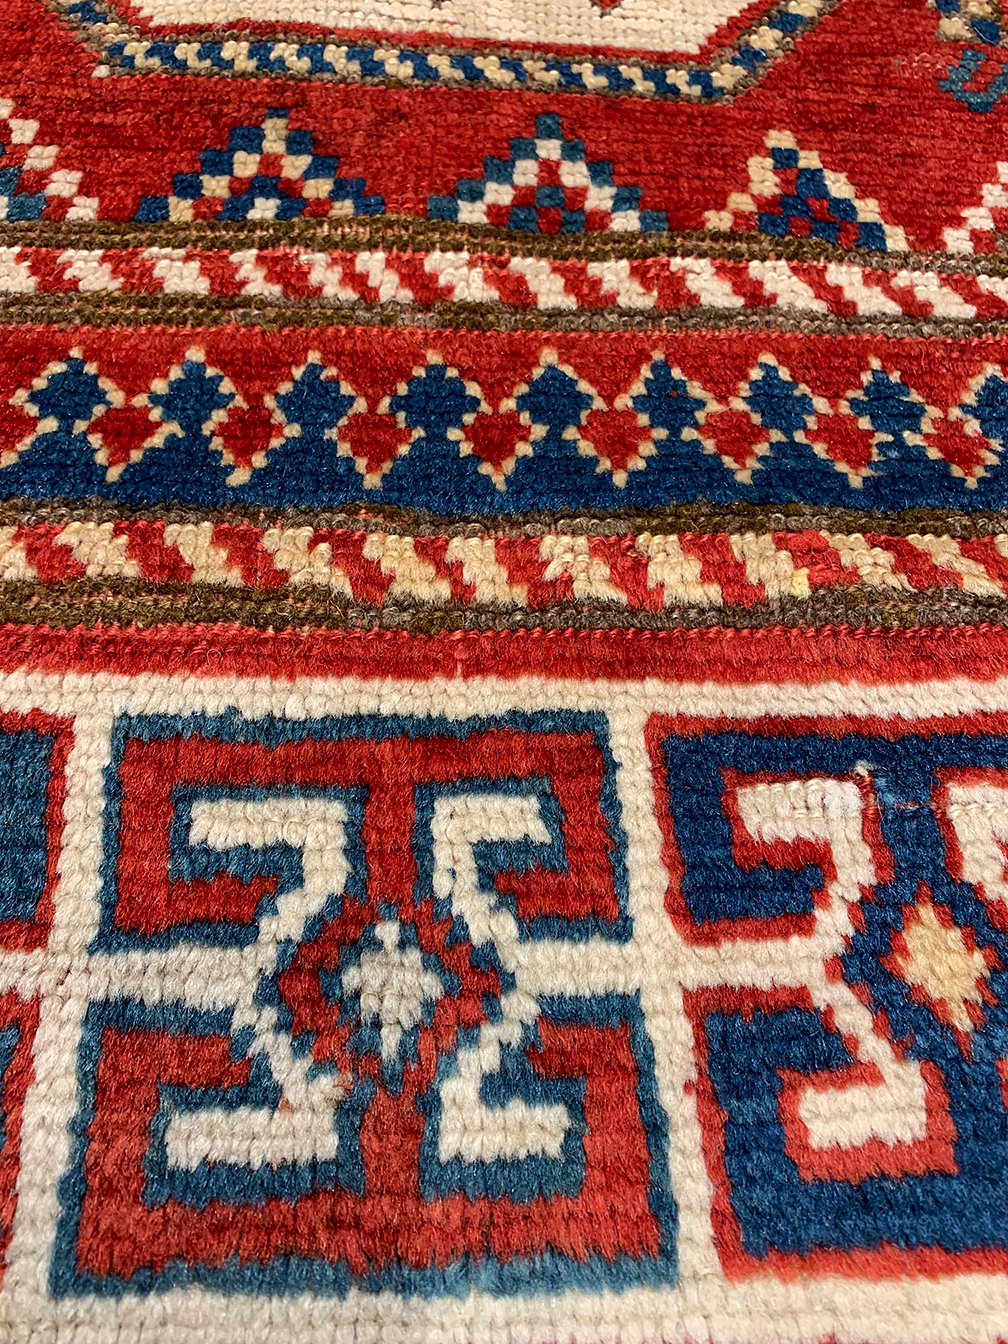 Antique kazak Rug - # 55232